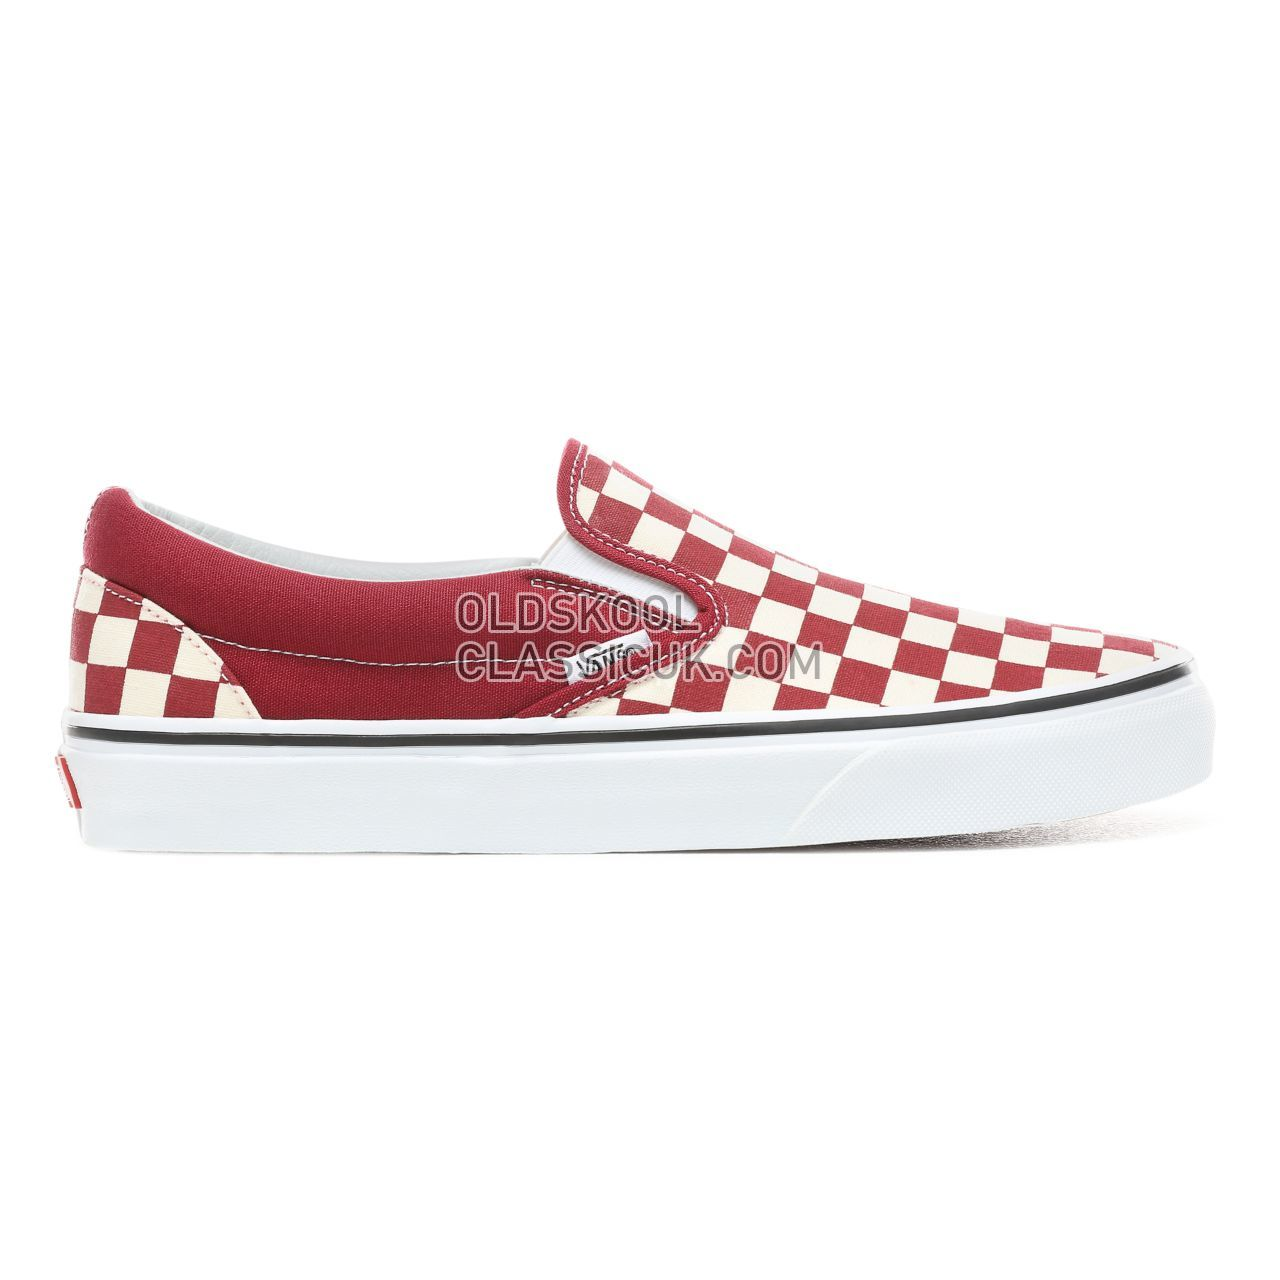 Vans Checkerboard Slip-On Sneakers Mens (Checkerboard) Rumba Red/True White VN0A38F7VLW Shoes